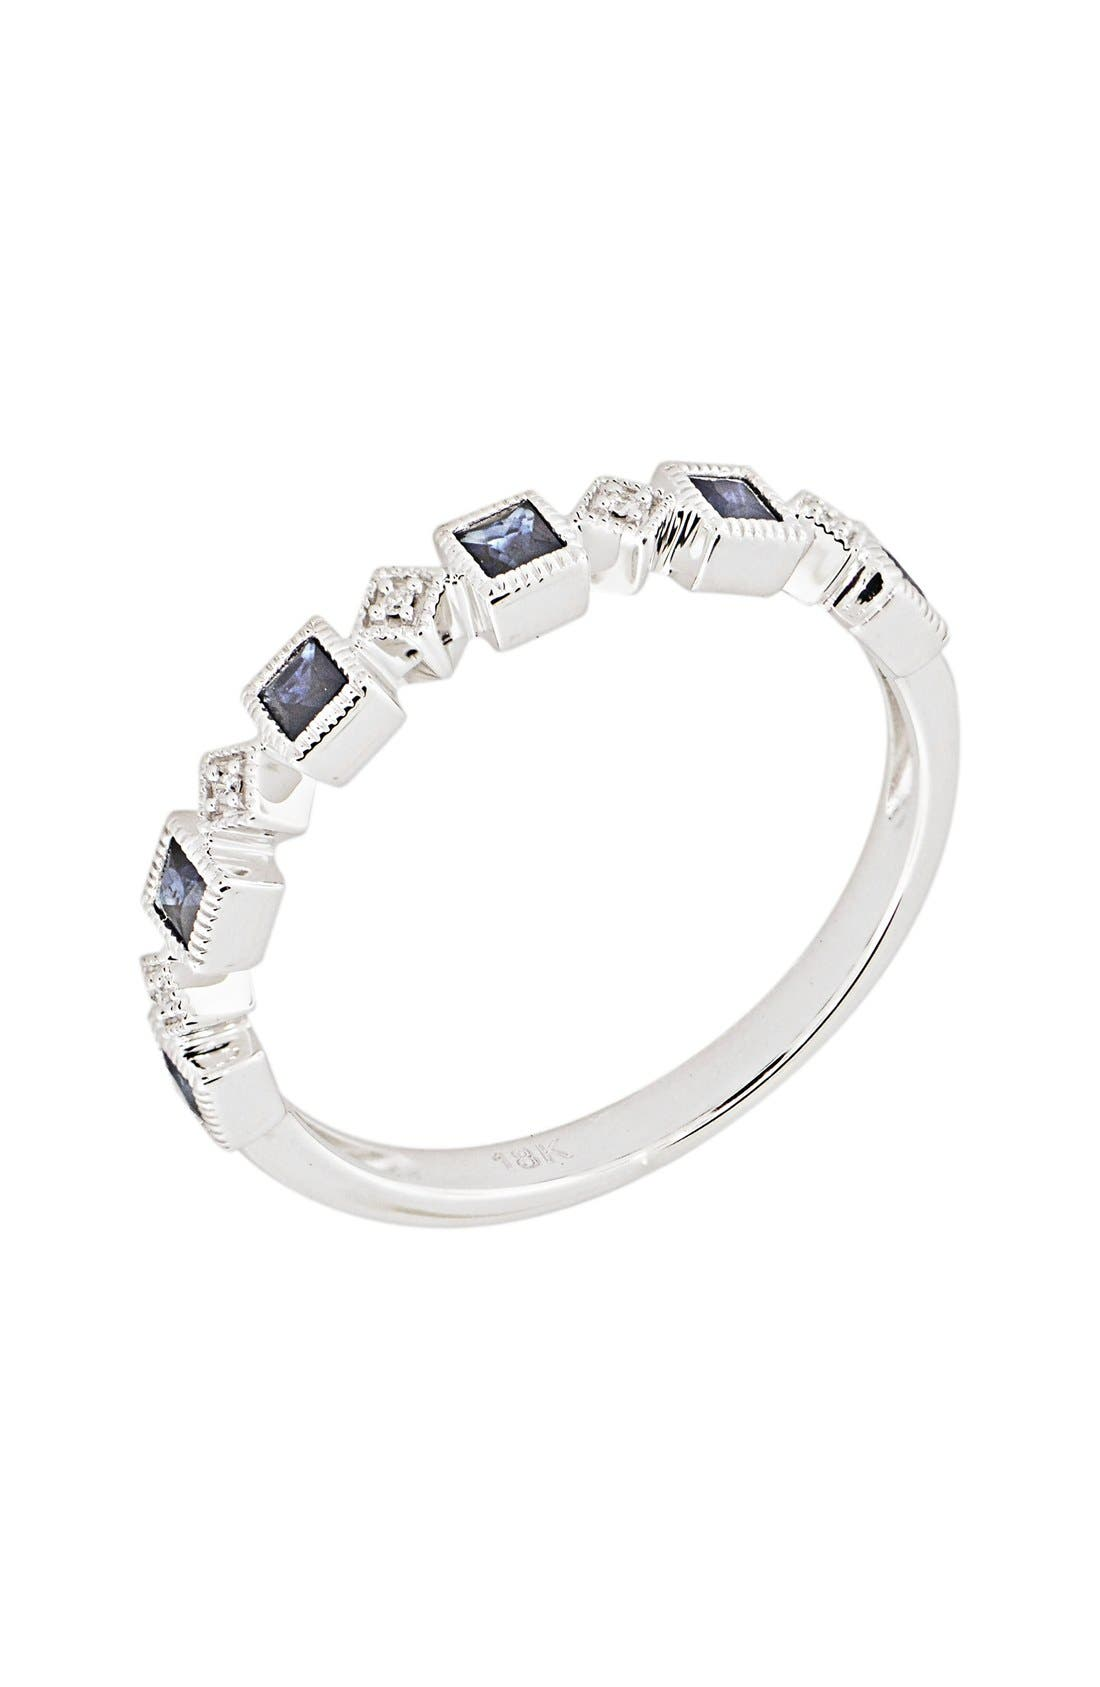 Stackable Diamond & Sapphire Band Ring,                             Main thumbnail 1, color,                             400